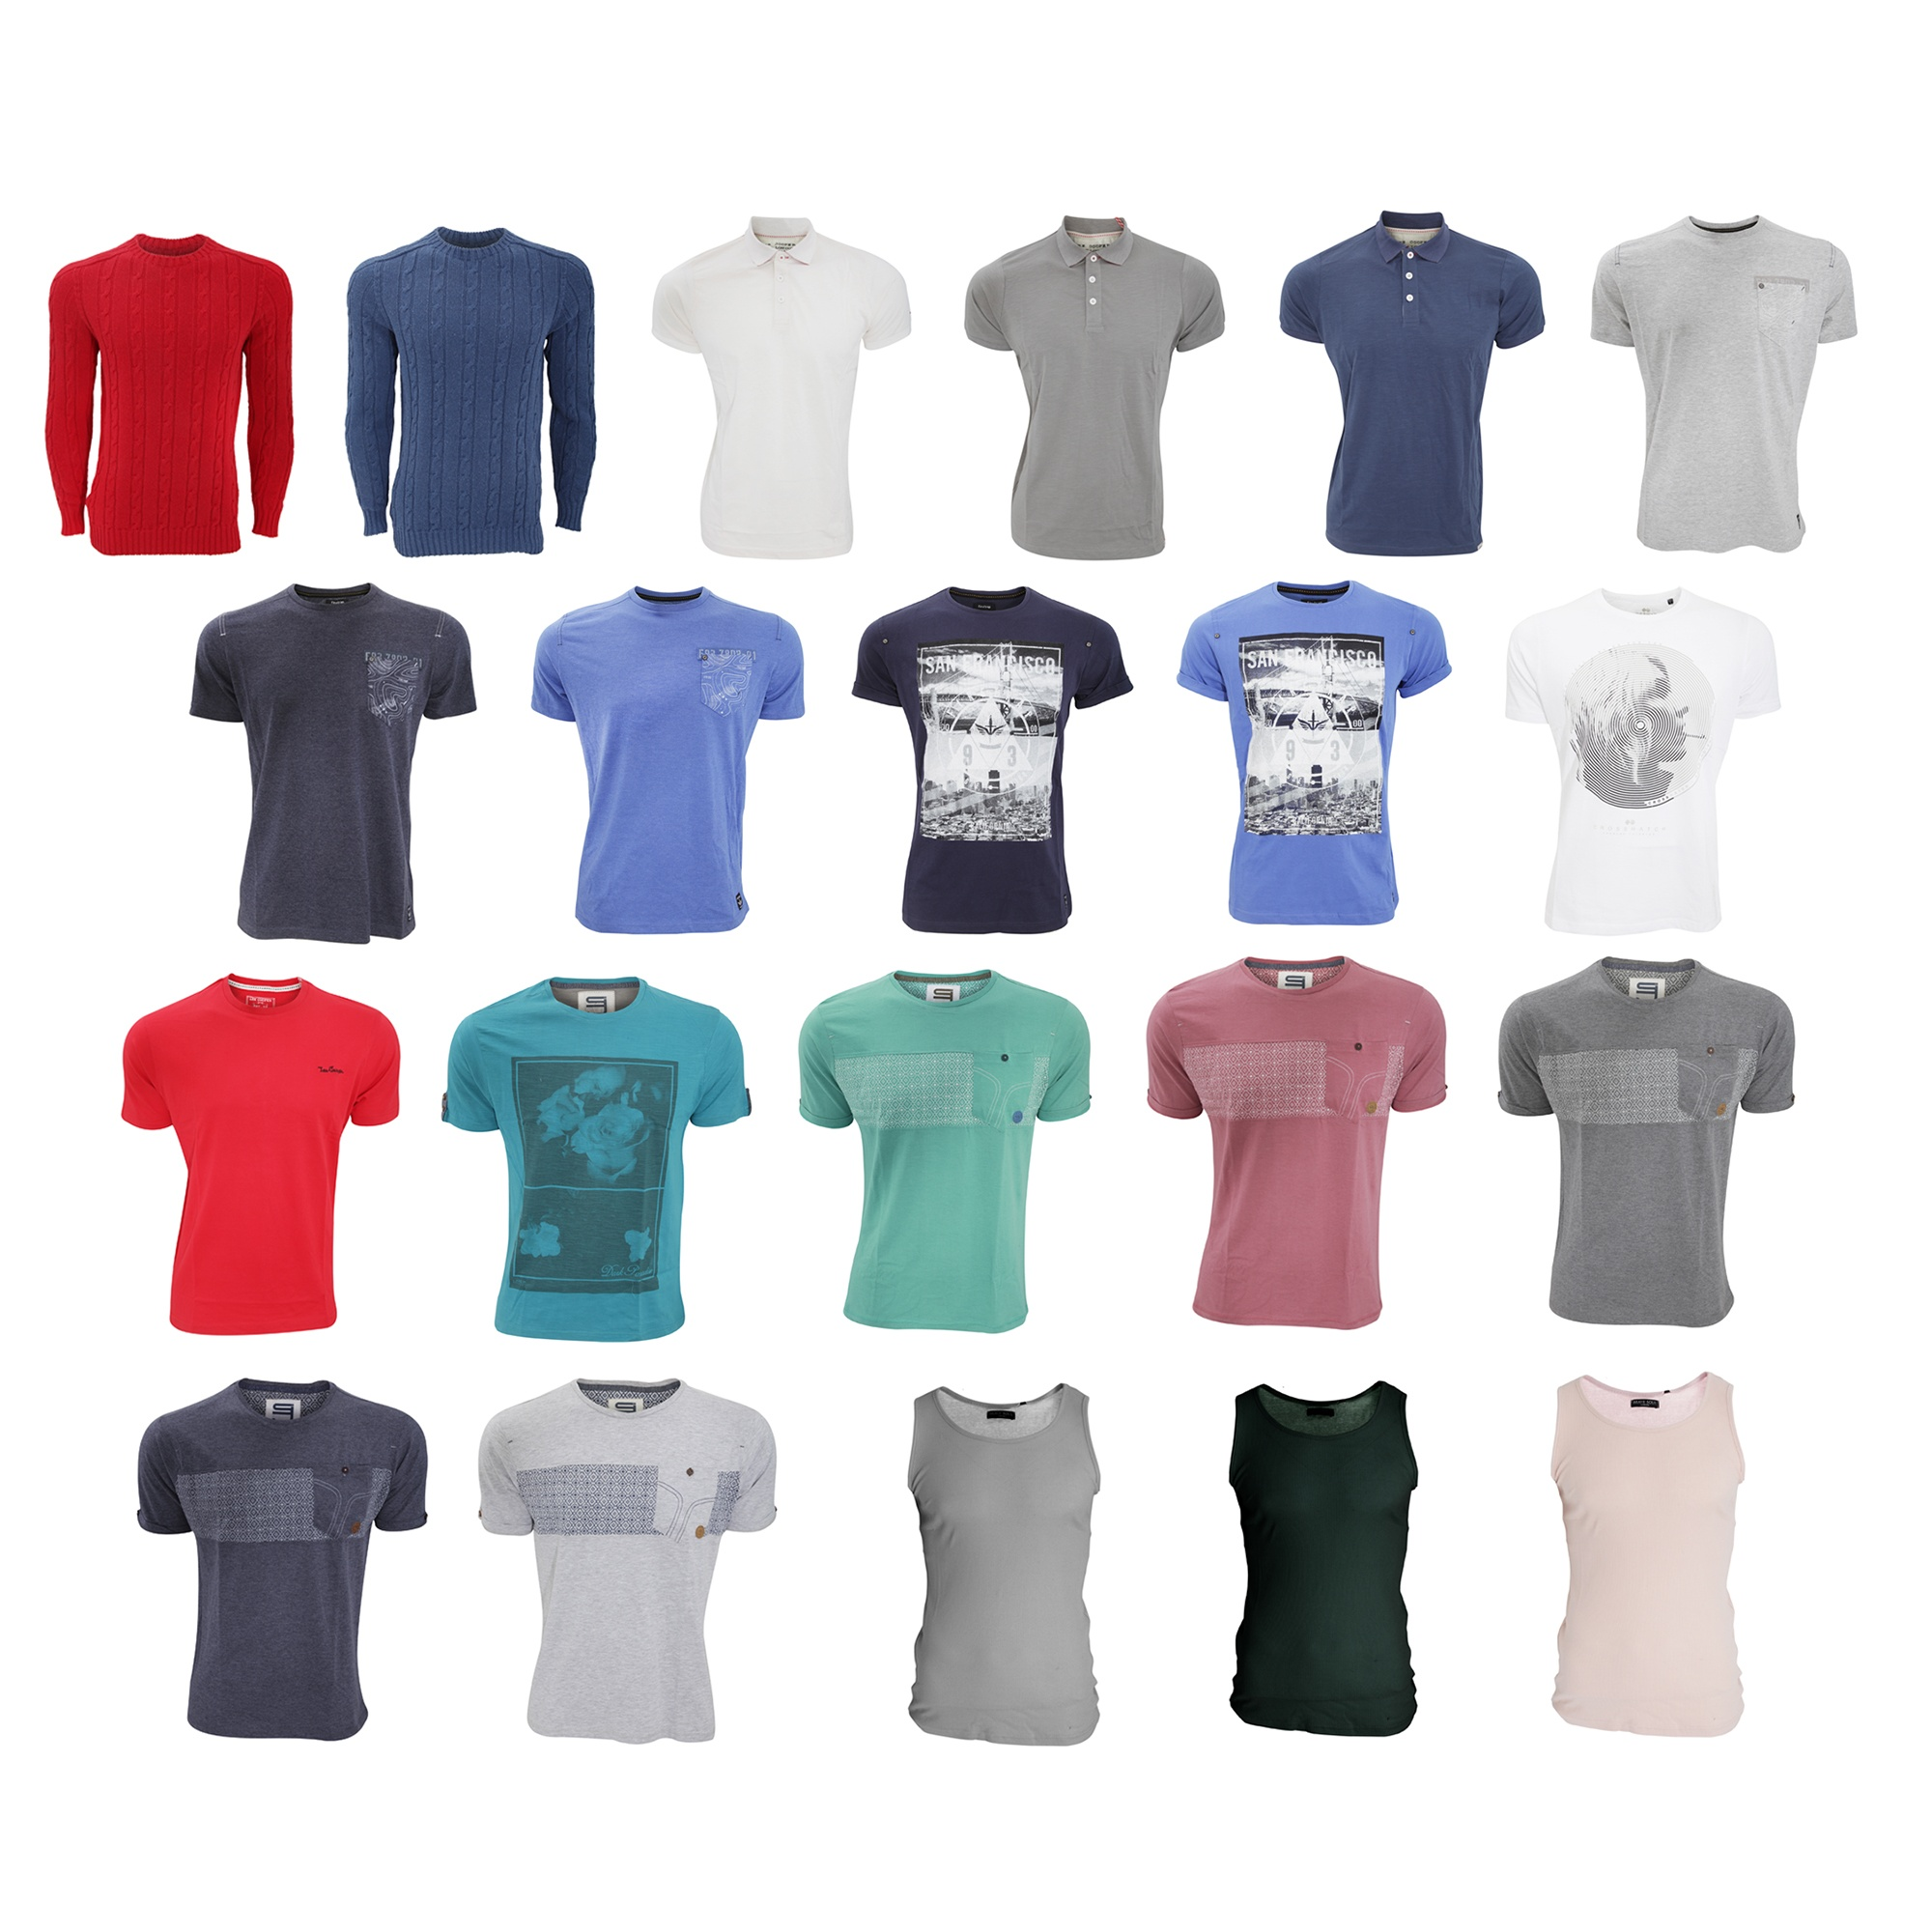 Bulk, Wholesale, Job Lot, Clearance Assorted Clothing (Dresses, Tops, Footwear And More) (Box 1) (Assorted Mens Tops (Set of 73))